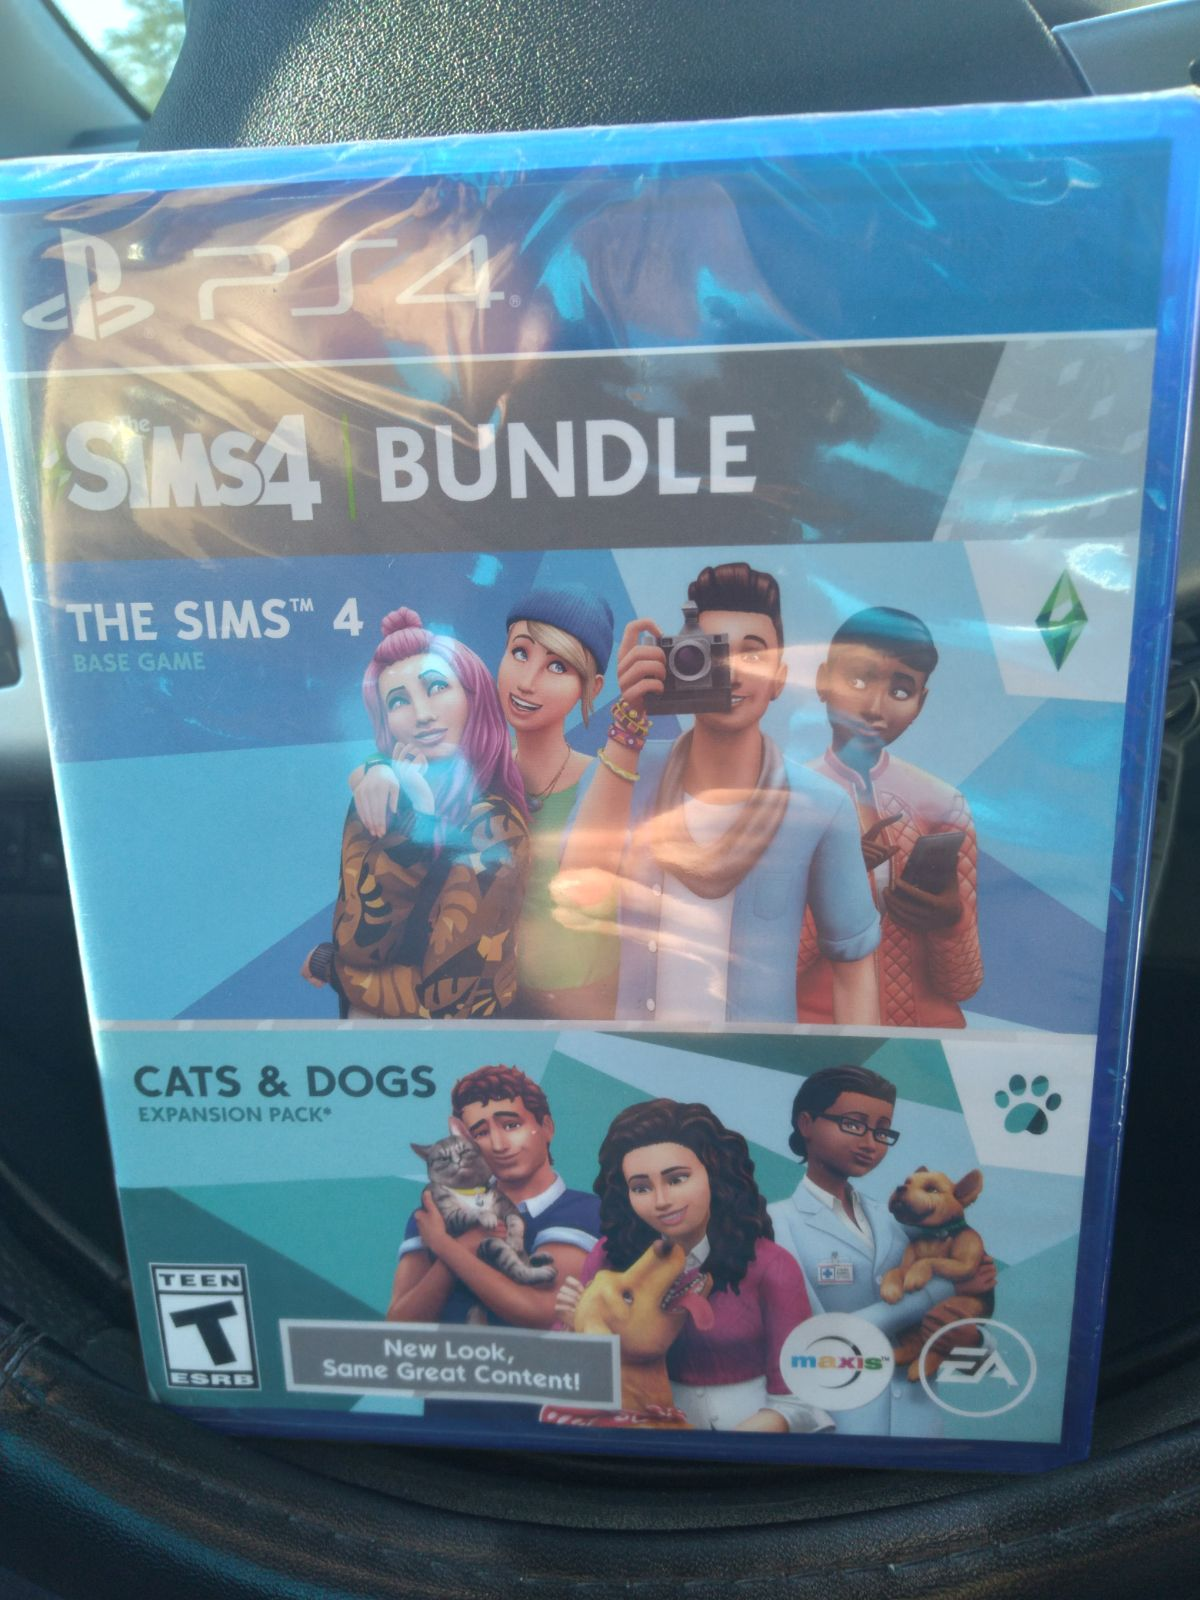 The Sims 4 / Cats & Dogs Ps4 NIP Bundle